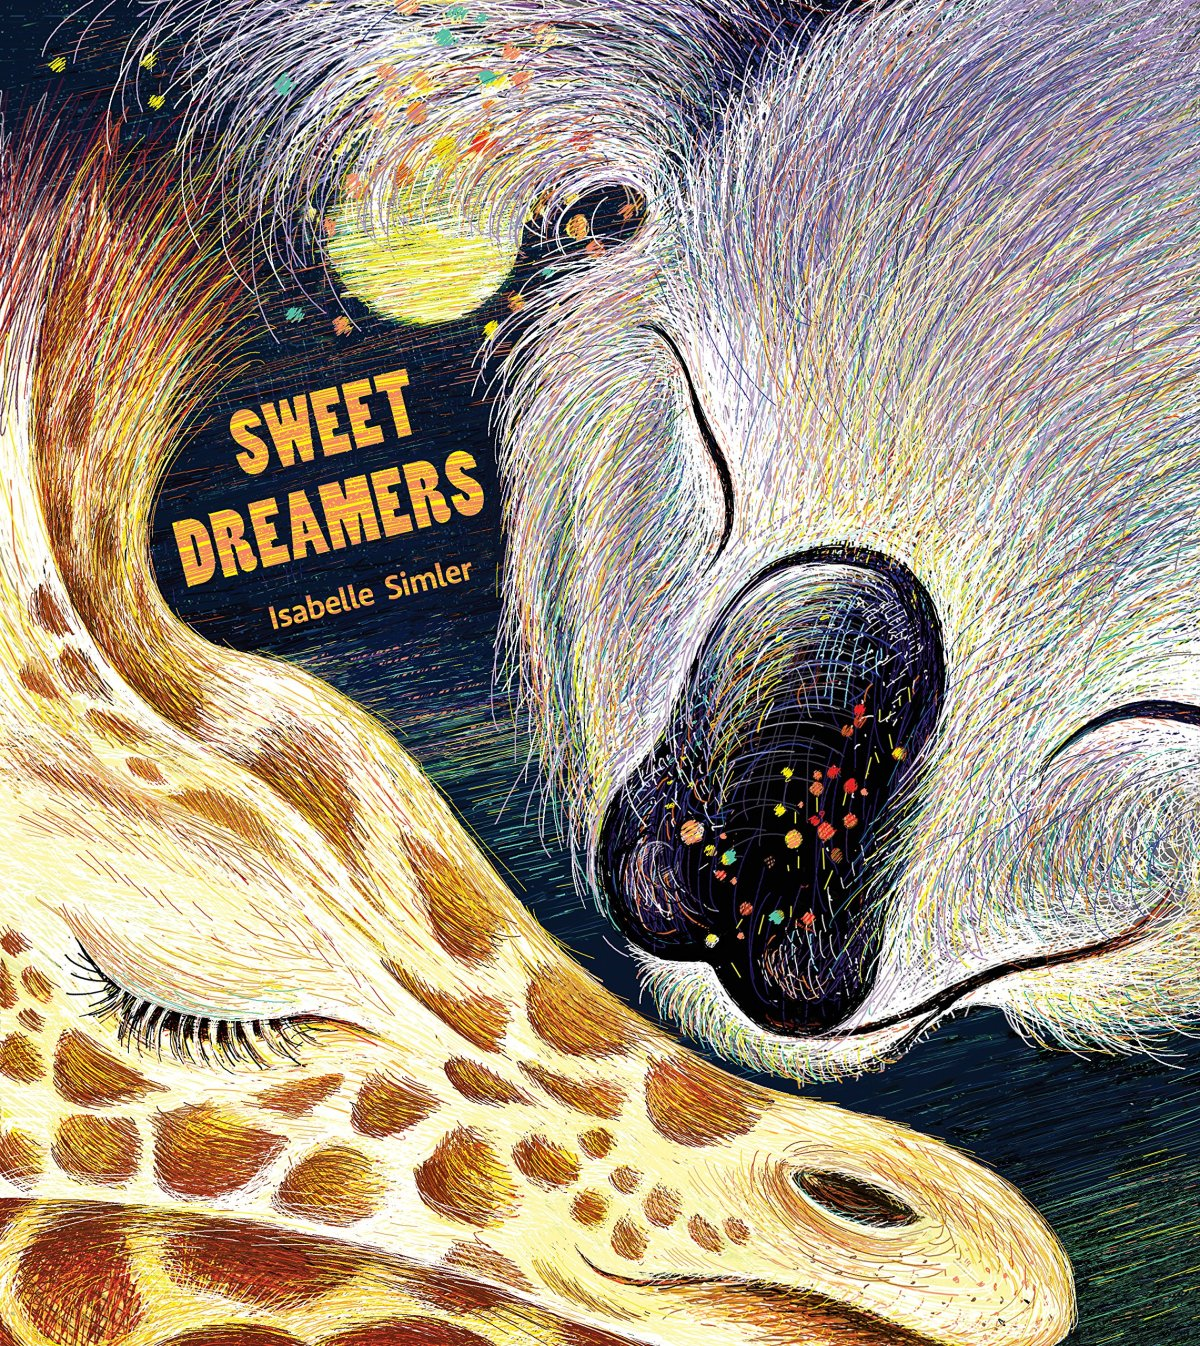 sweet dreamers cover